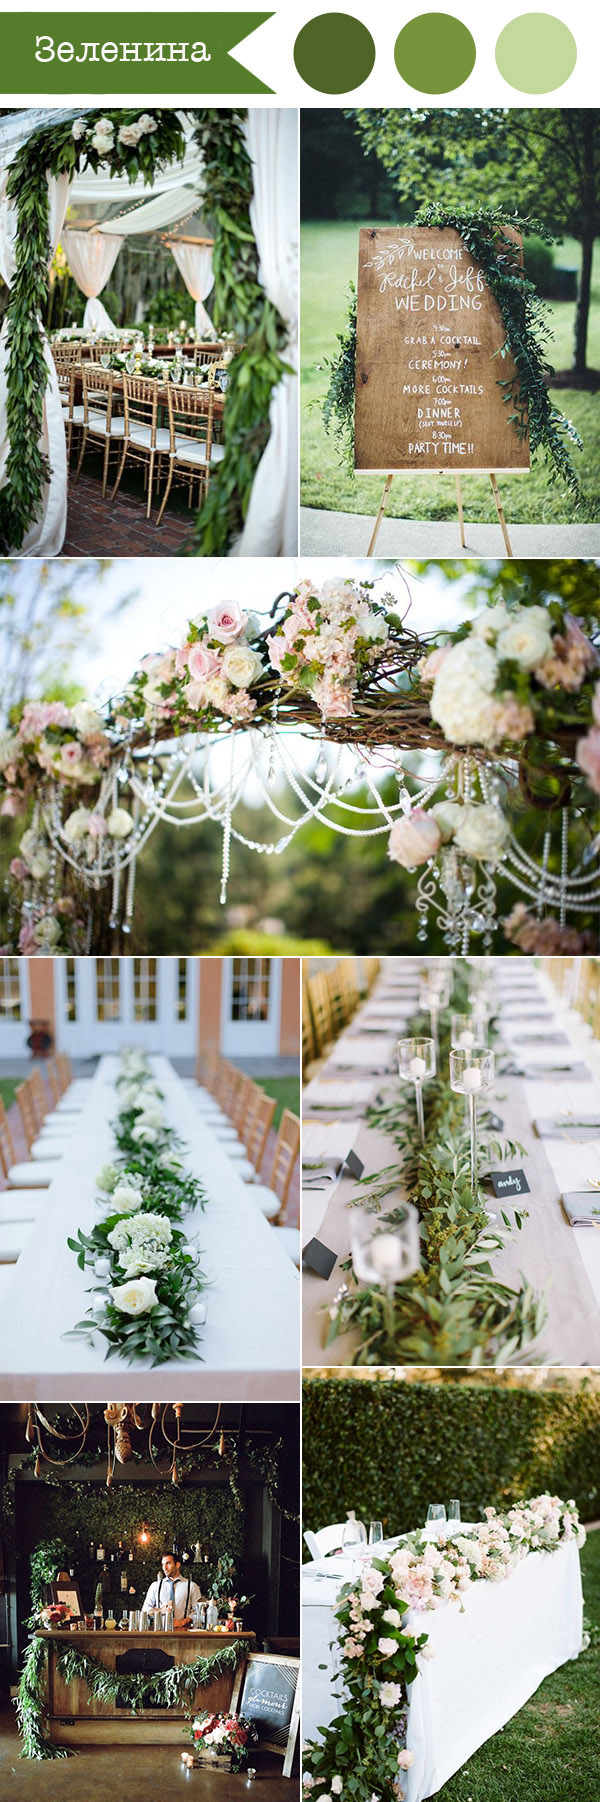 bridalidol_top_5_wedding_themes_for_2016_greenery